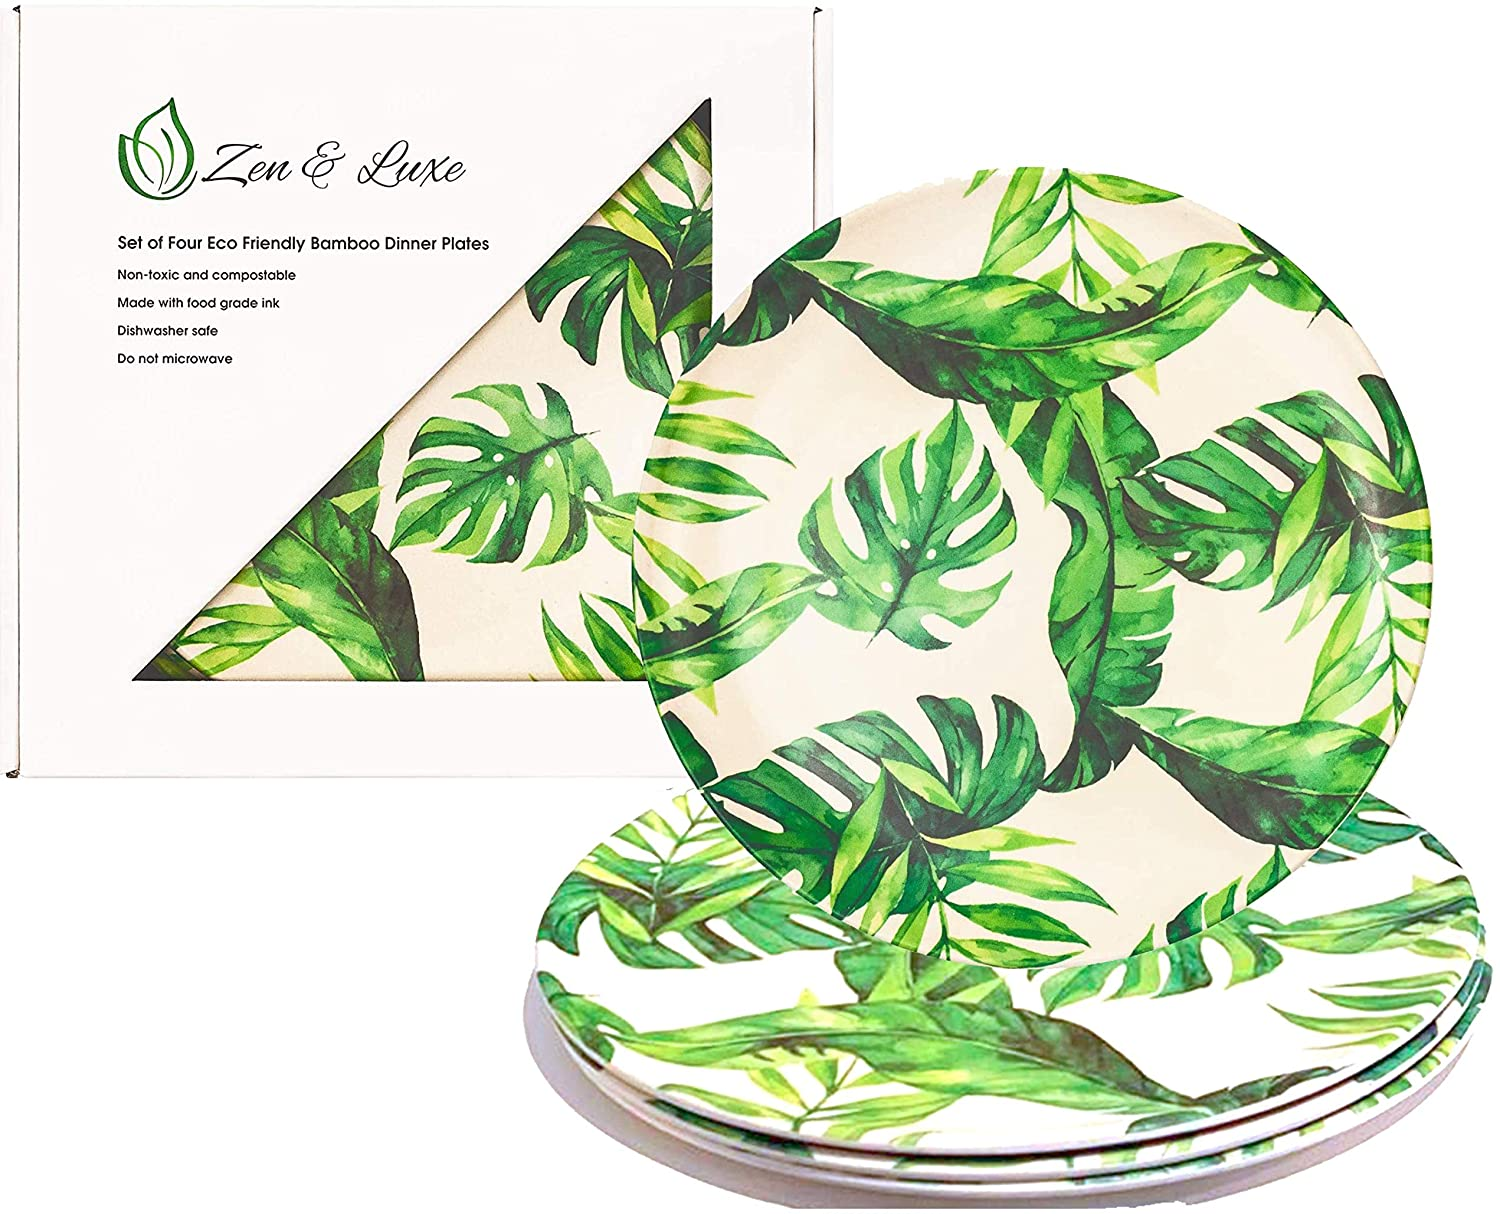 off-white plates with leaf pattern